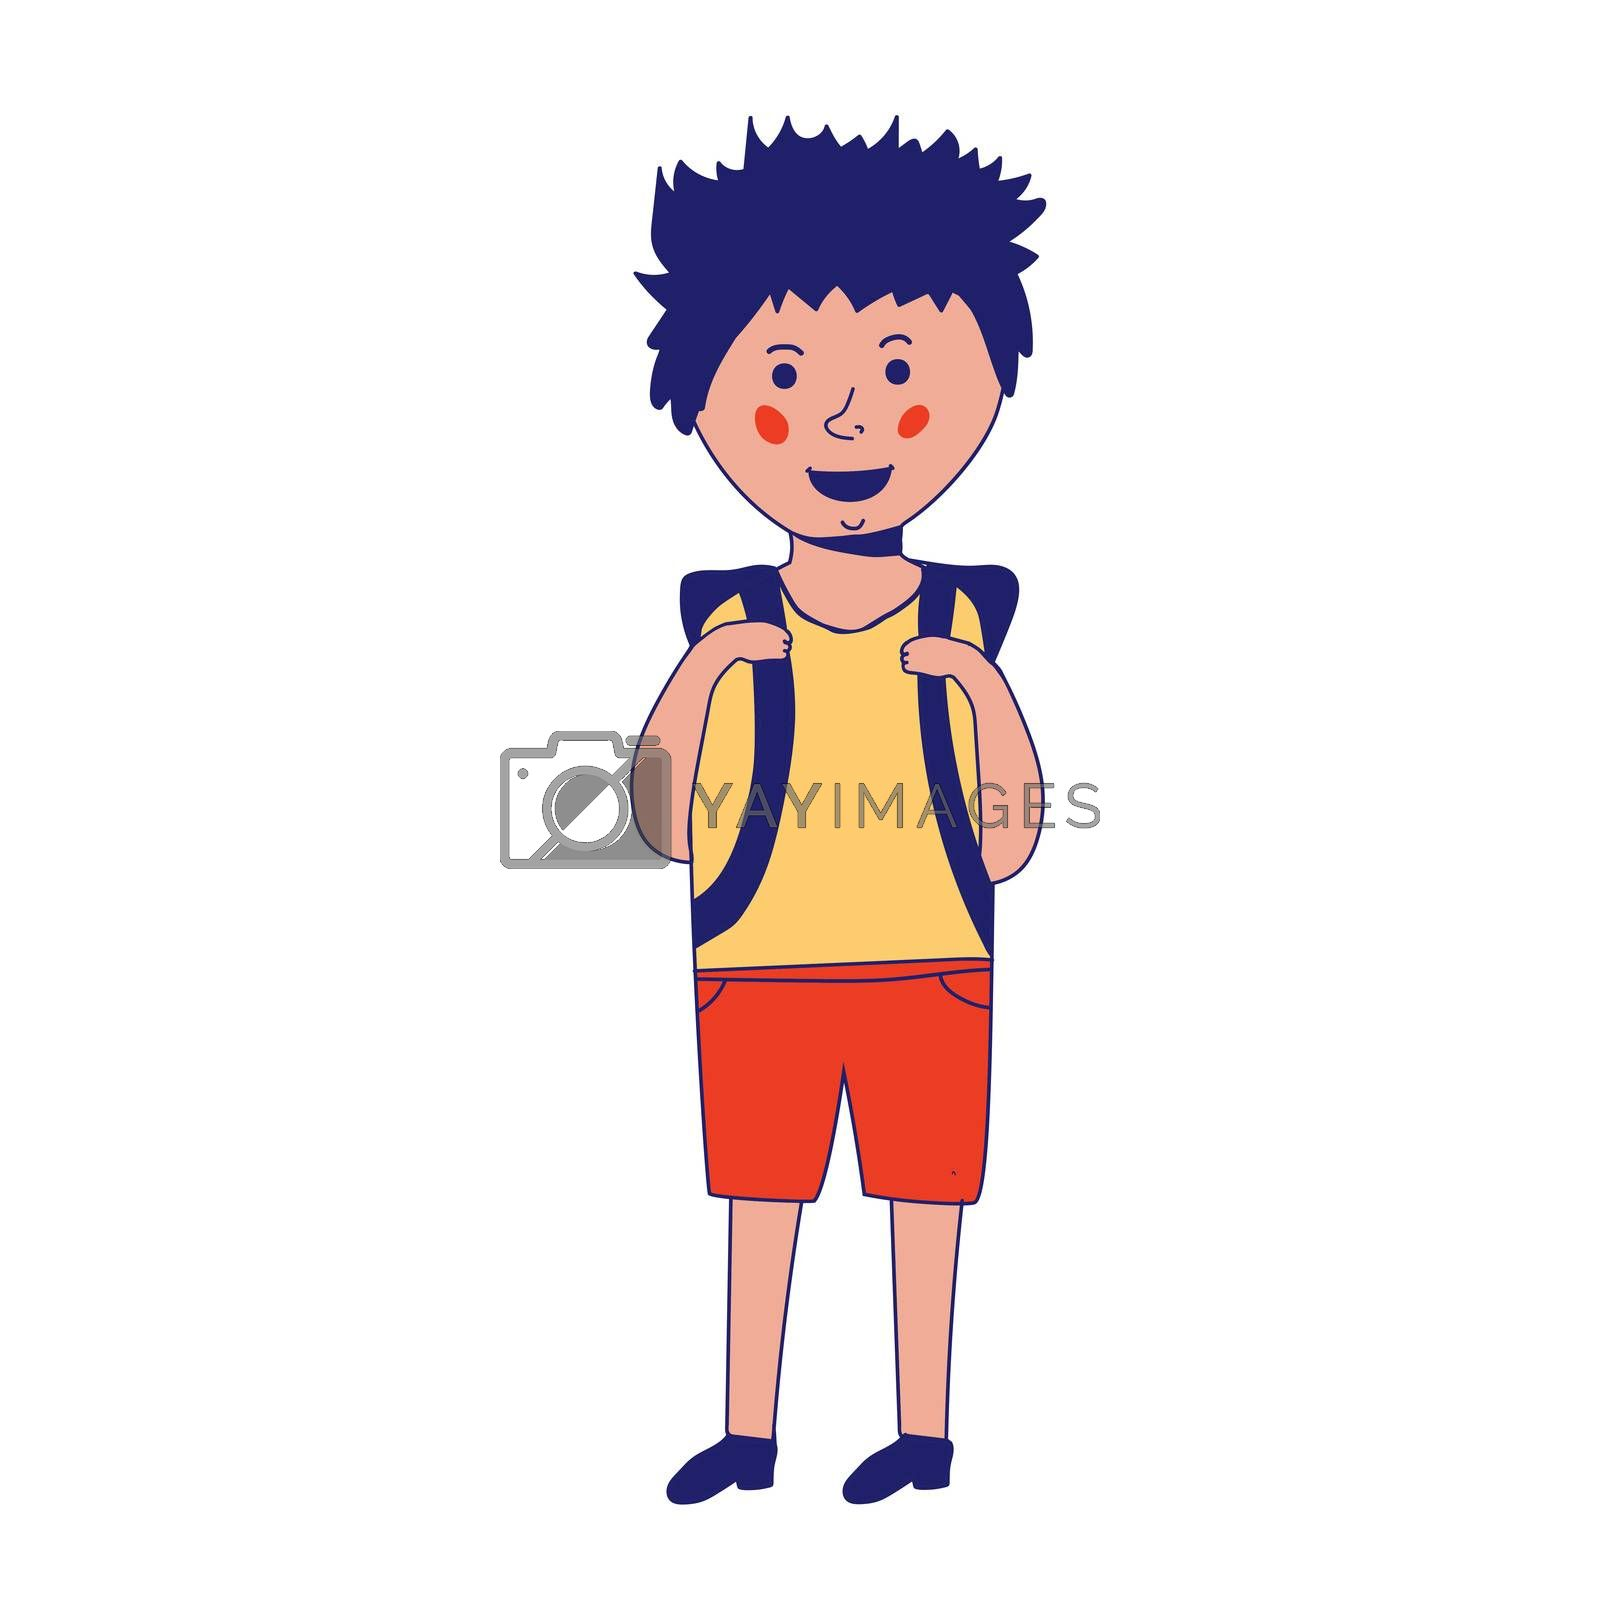 Happy caucasian schoolboy holding a book and waving his hand. Full length of smiling schoolboy making greeting gesture - waving hand. sketch cartoon illustration isolated on white background